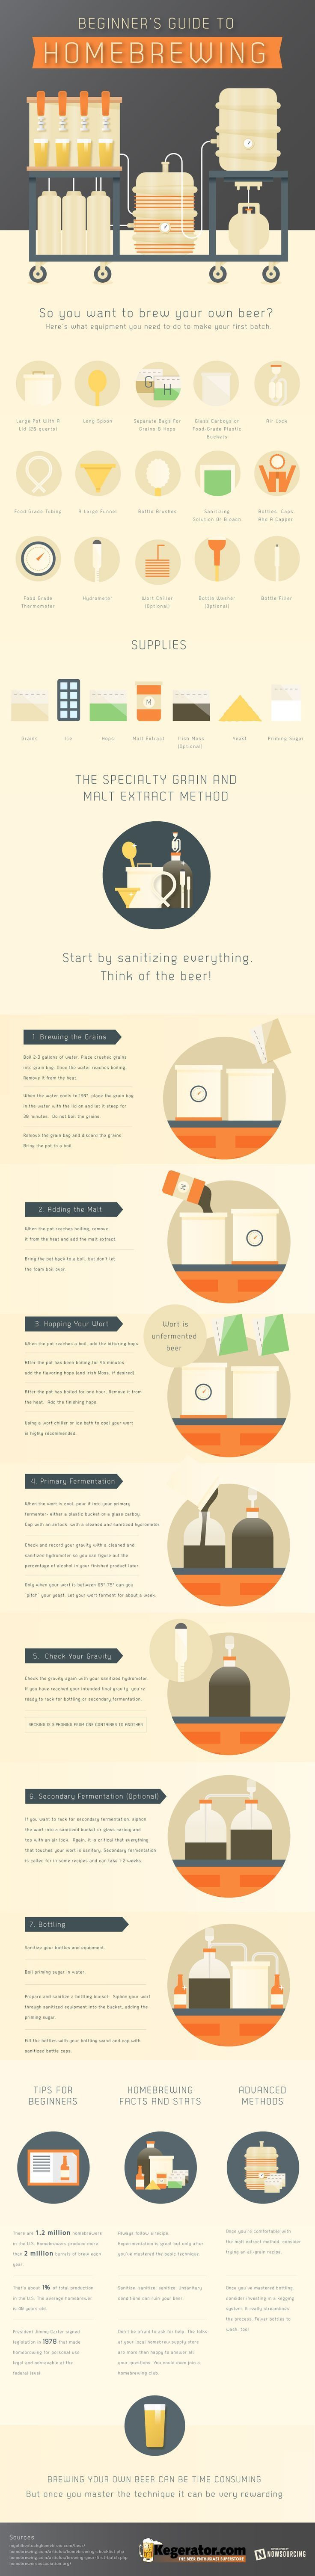 Easy beginner's guide to home brewing from a beer kit ...